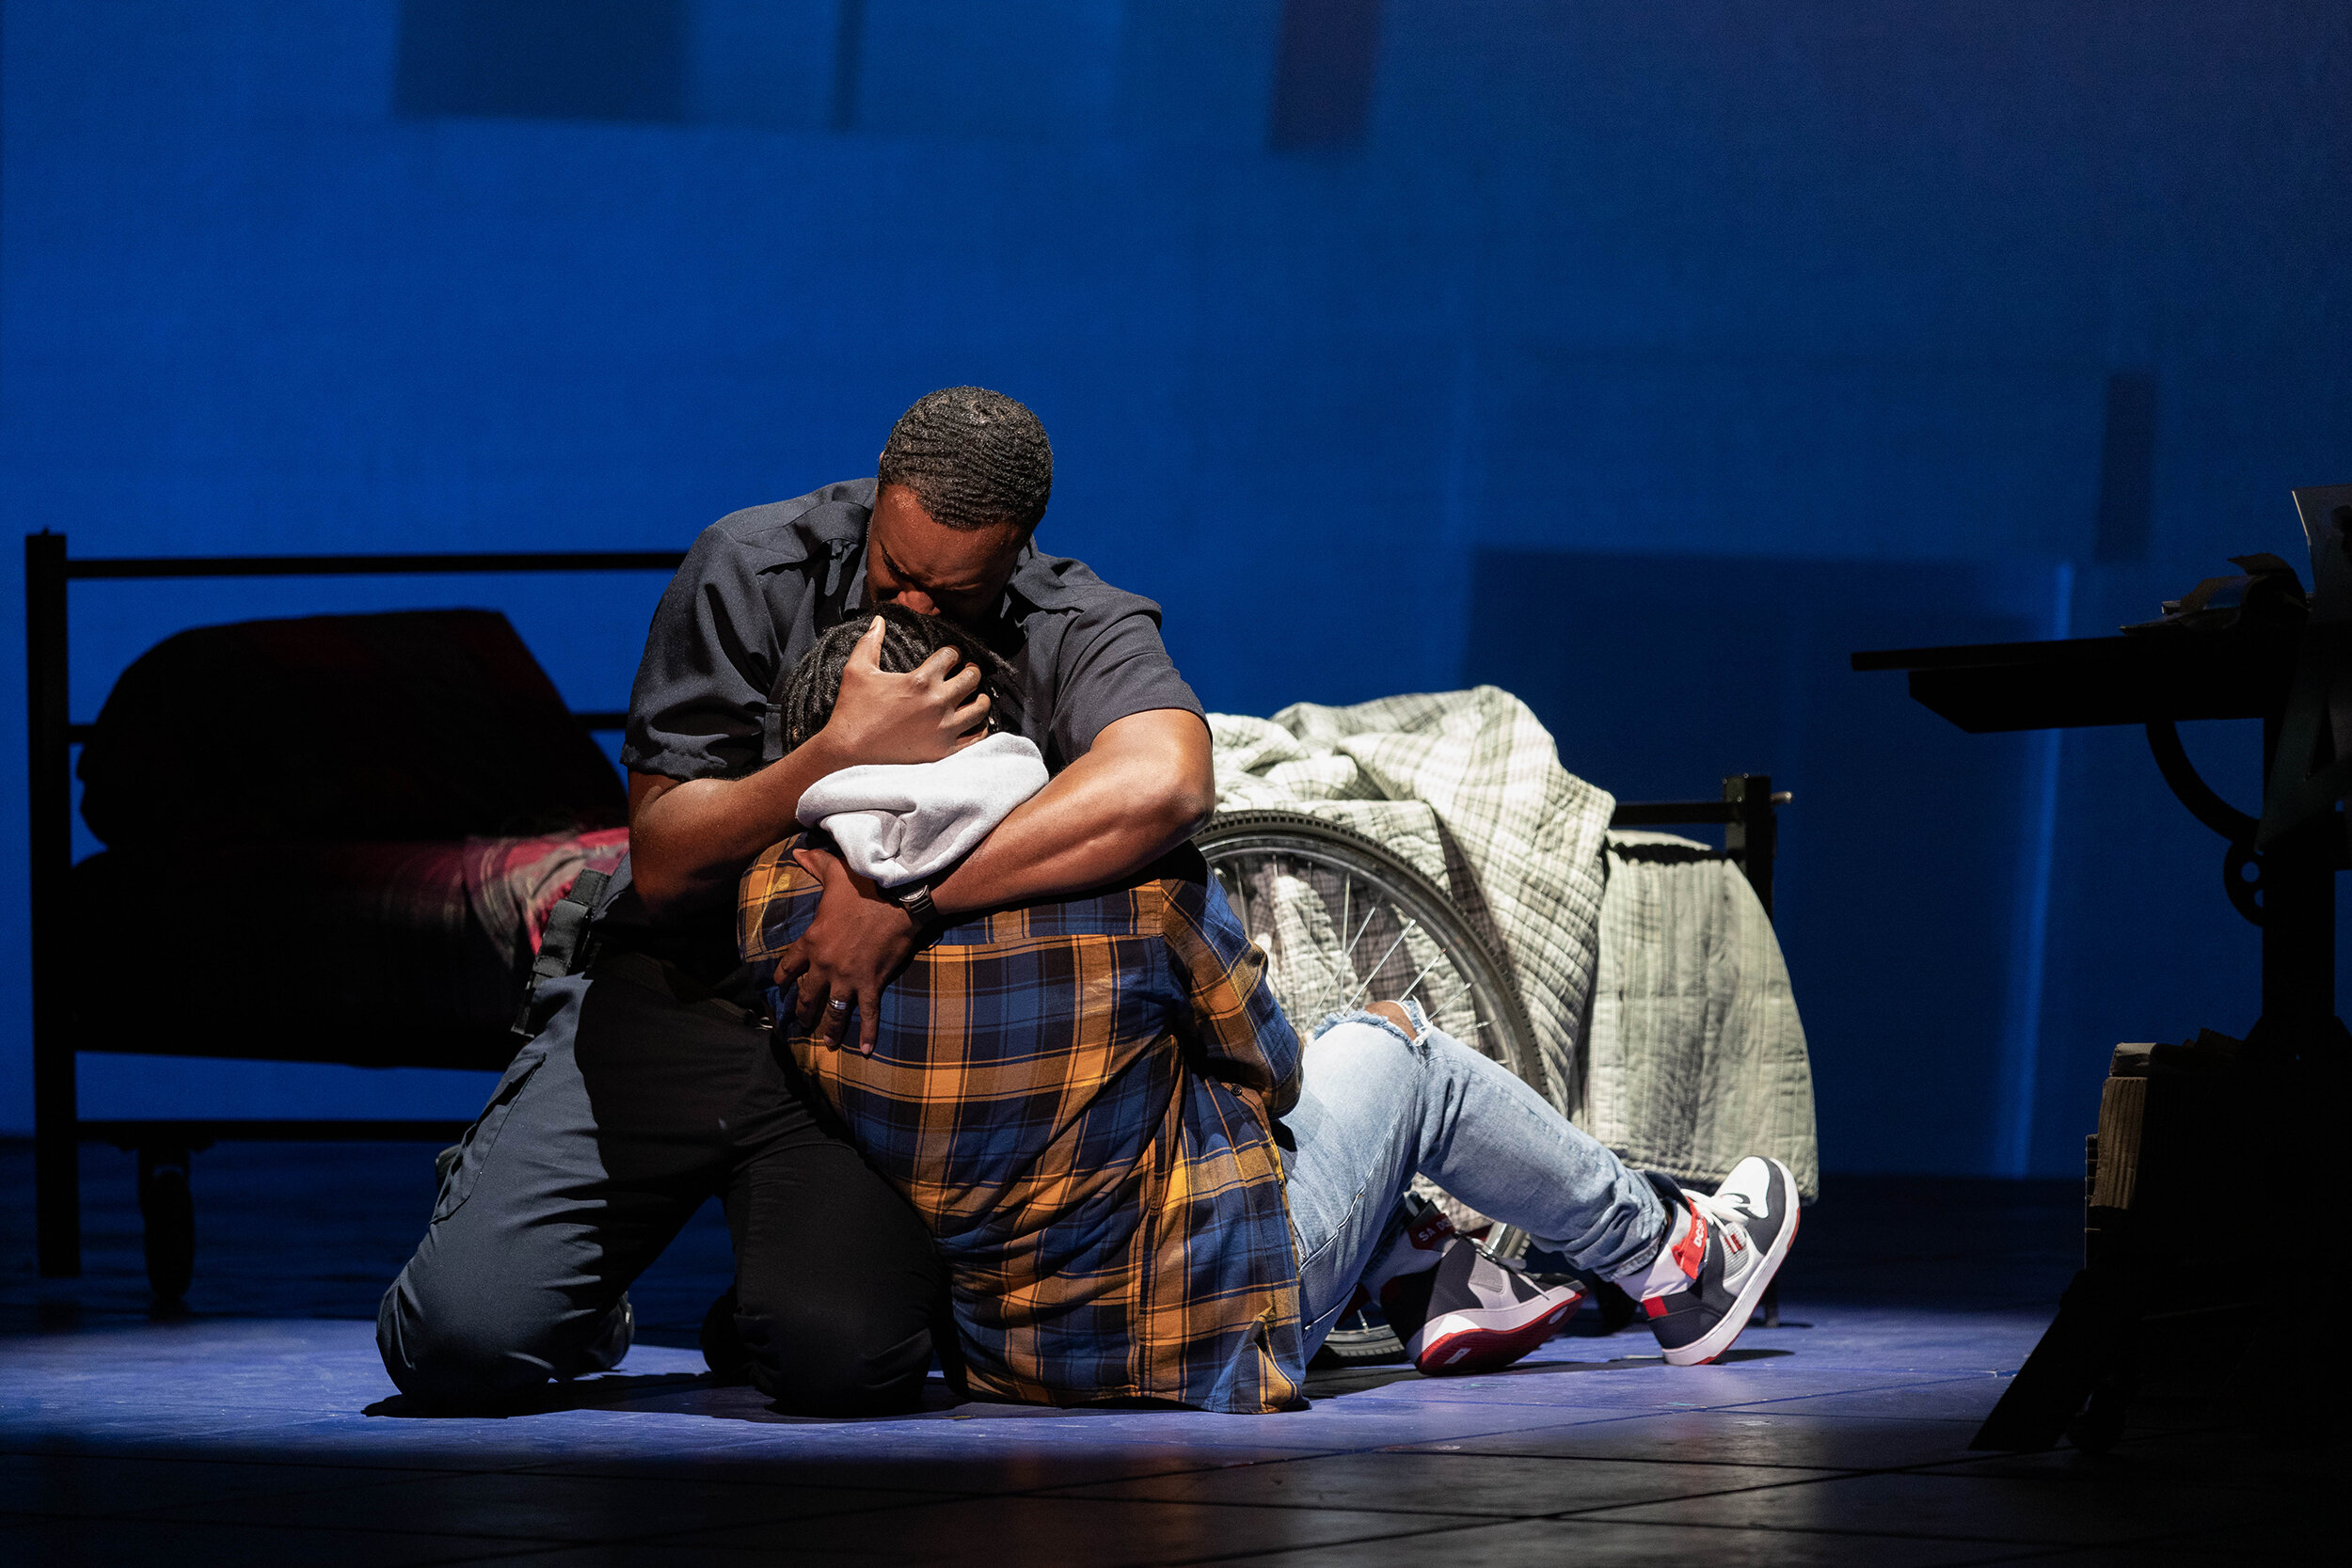 """Kenneth Kellogg as The Father and Aaron Crouch as The Son in The Glimmerglass Festival's 2019 world premiere of Jeanine Tesori and Tazewell Thompson's """"Blue."""""""